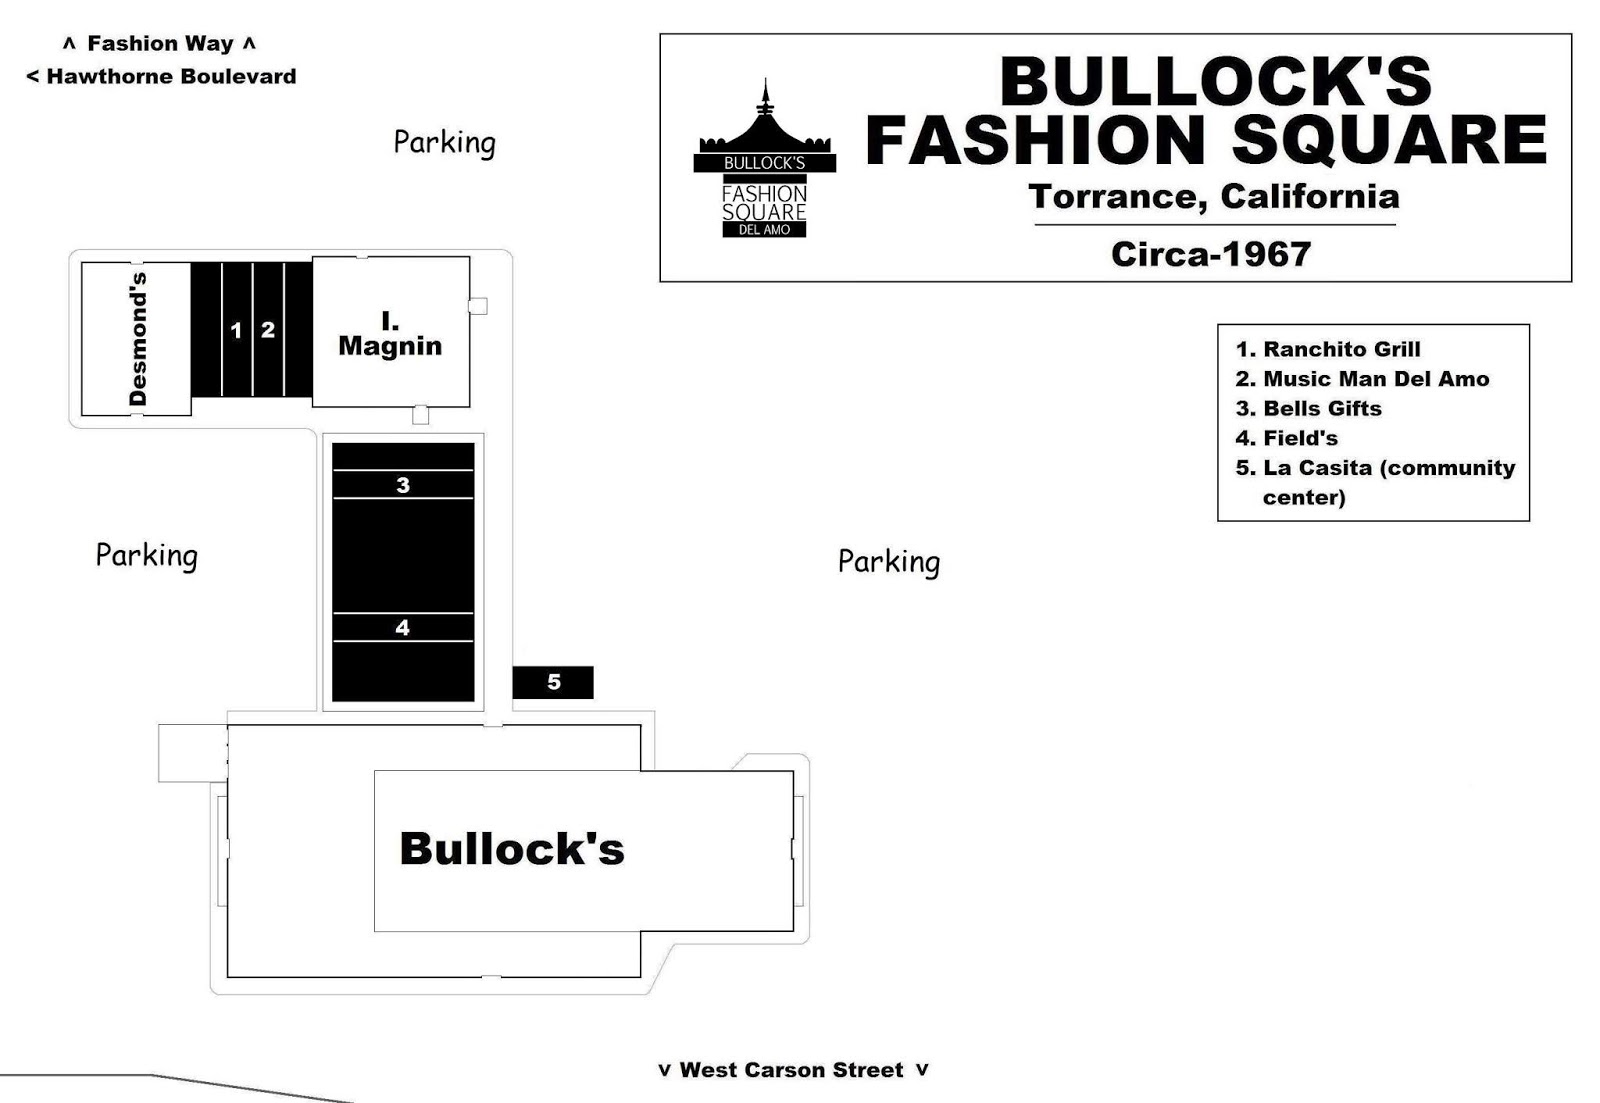 Scottsdale Fashion Square Mall Map | www.topsimages.com